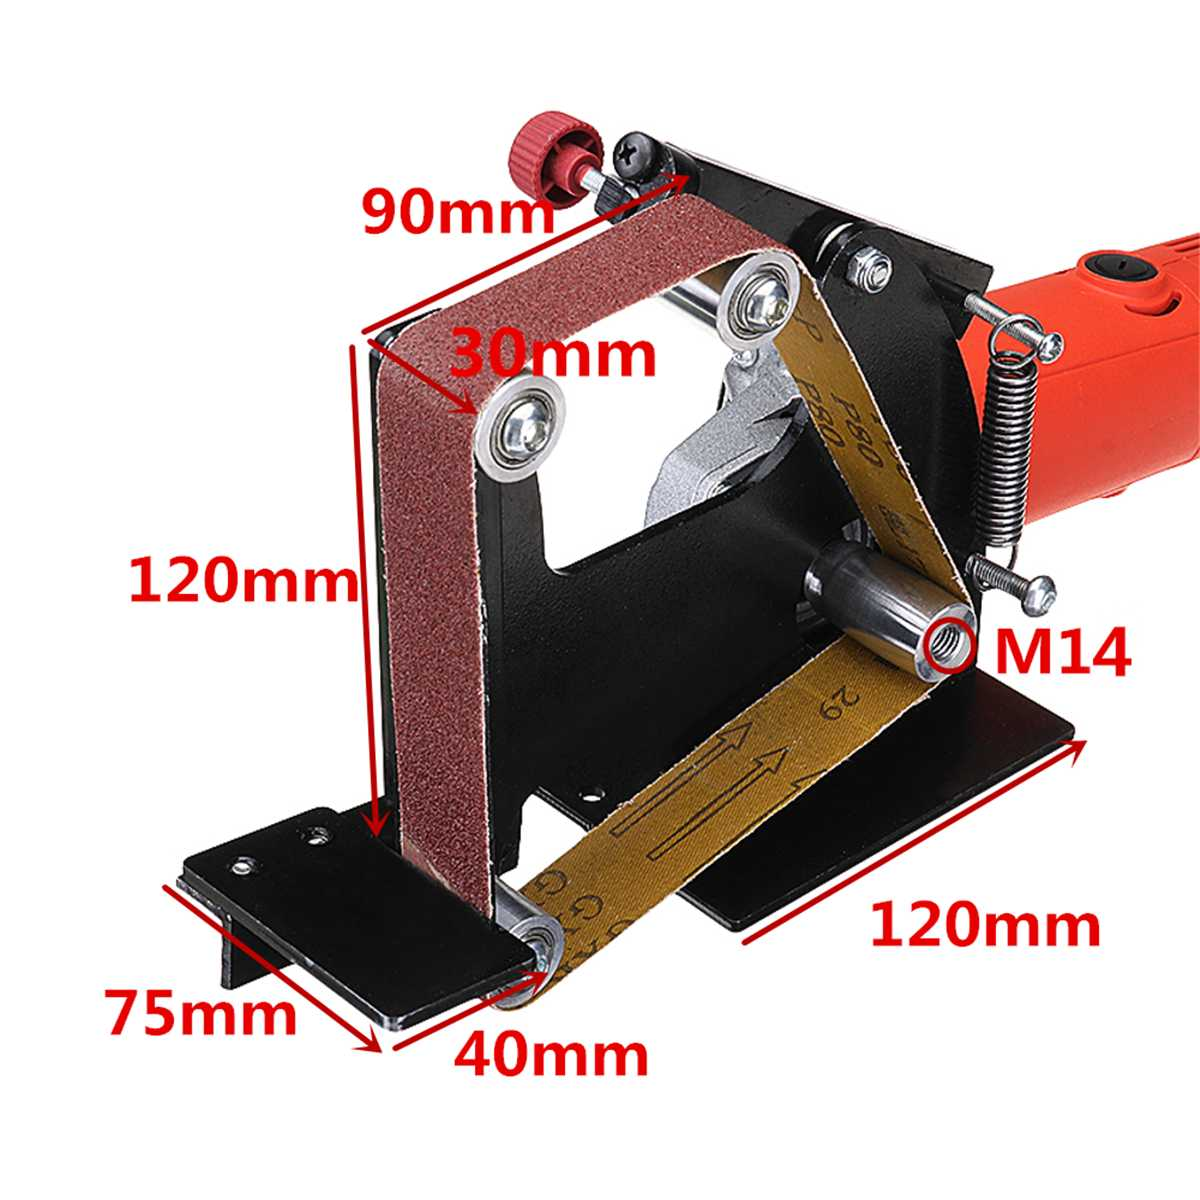 Angle Grinder Belt Sander Attachment Metal Wood Sanding Belt With M14 Spindle For 115/125/150 Grinder